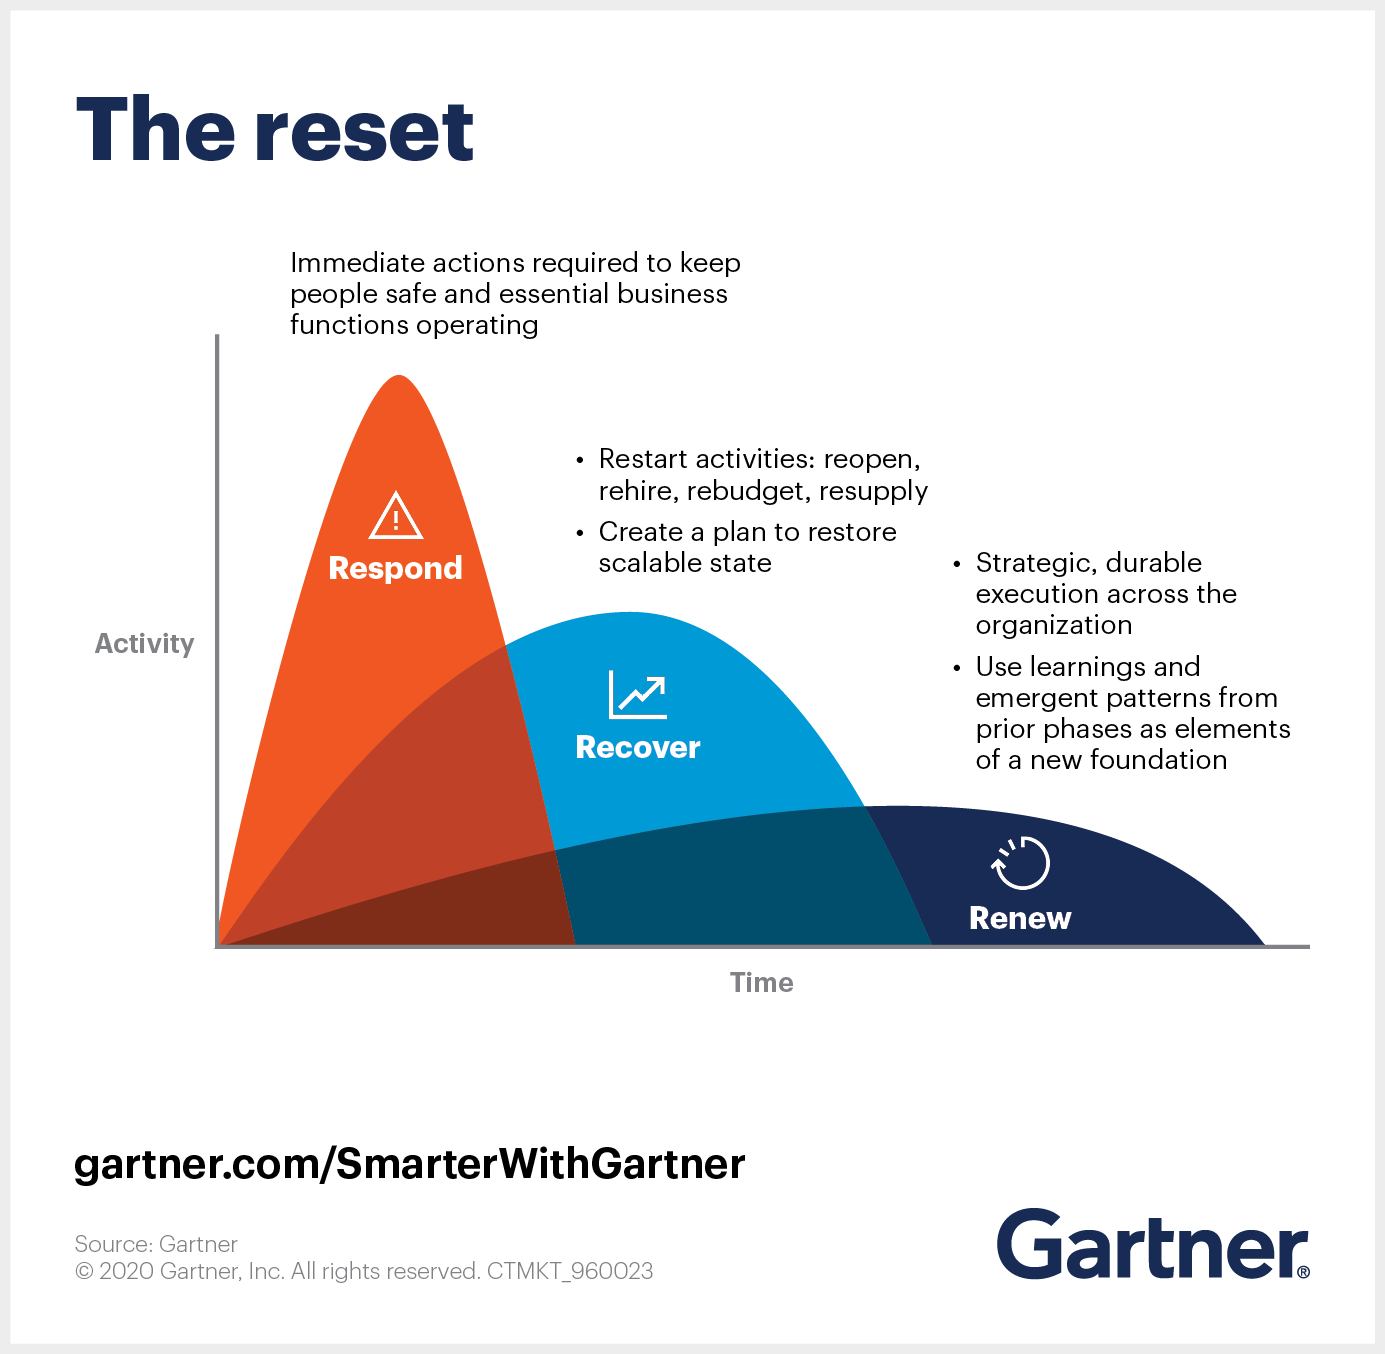 Gartner Reset framework describes the COVID-19 pandemic response in three phases: respond, recover, renew.